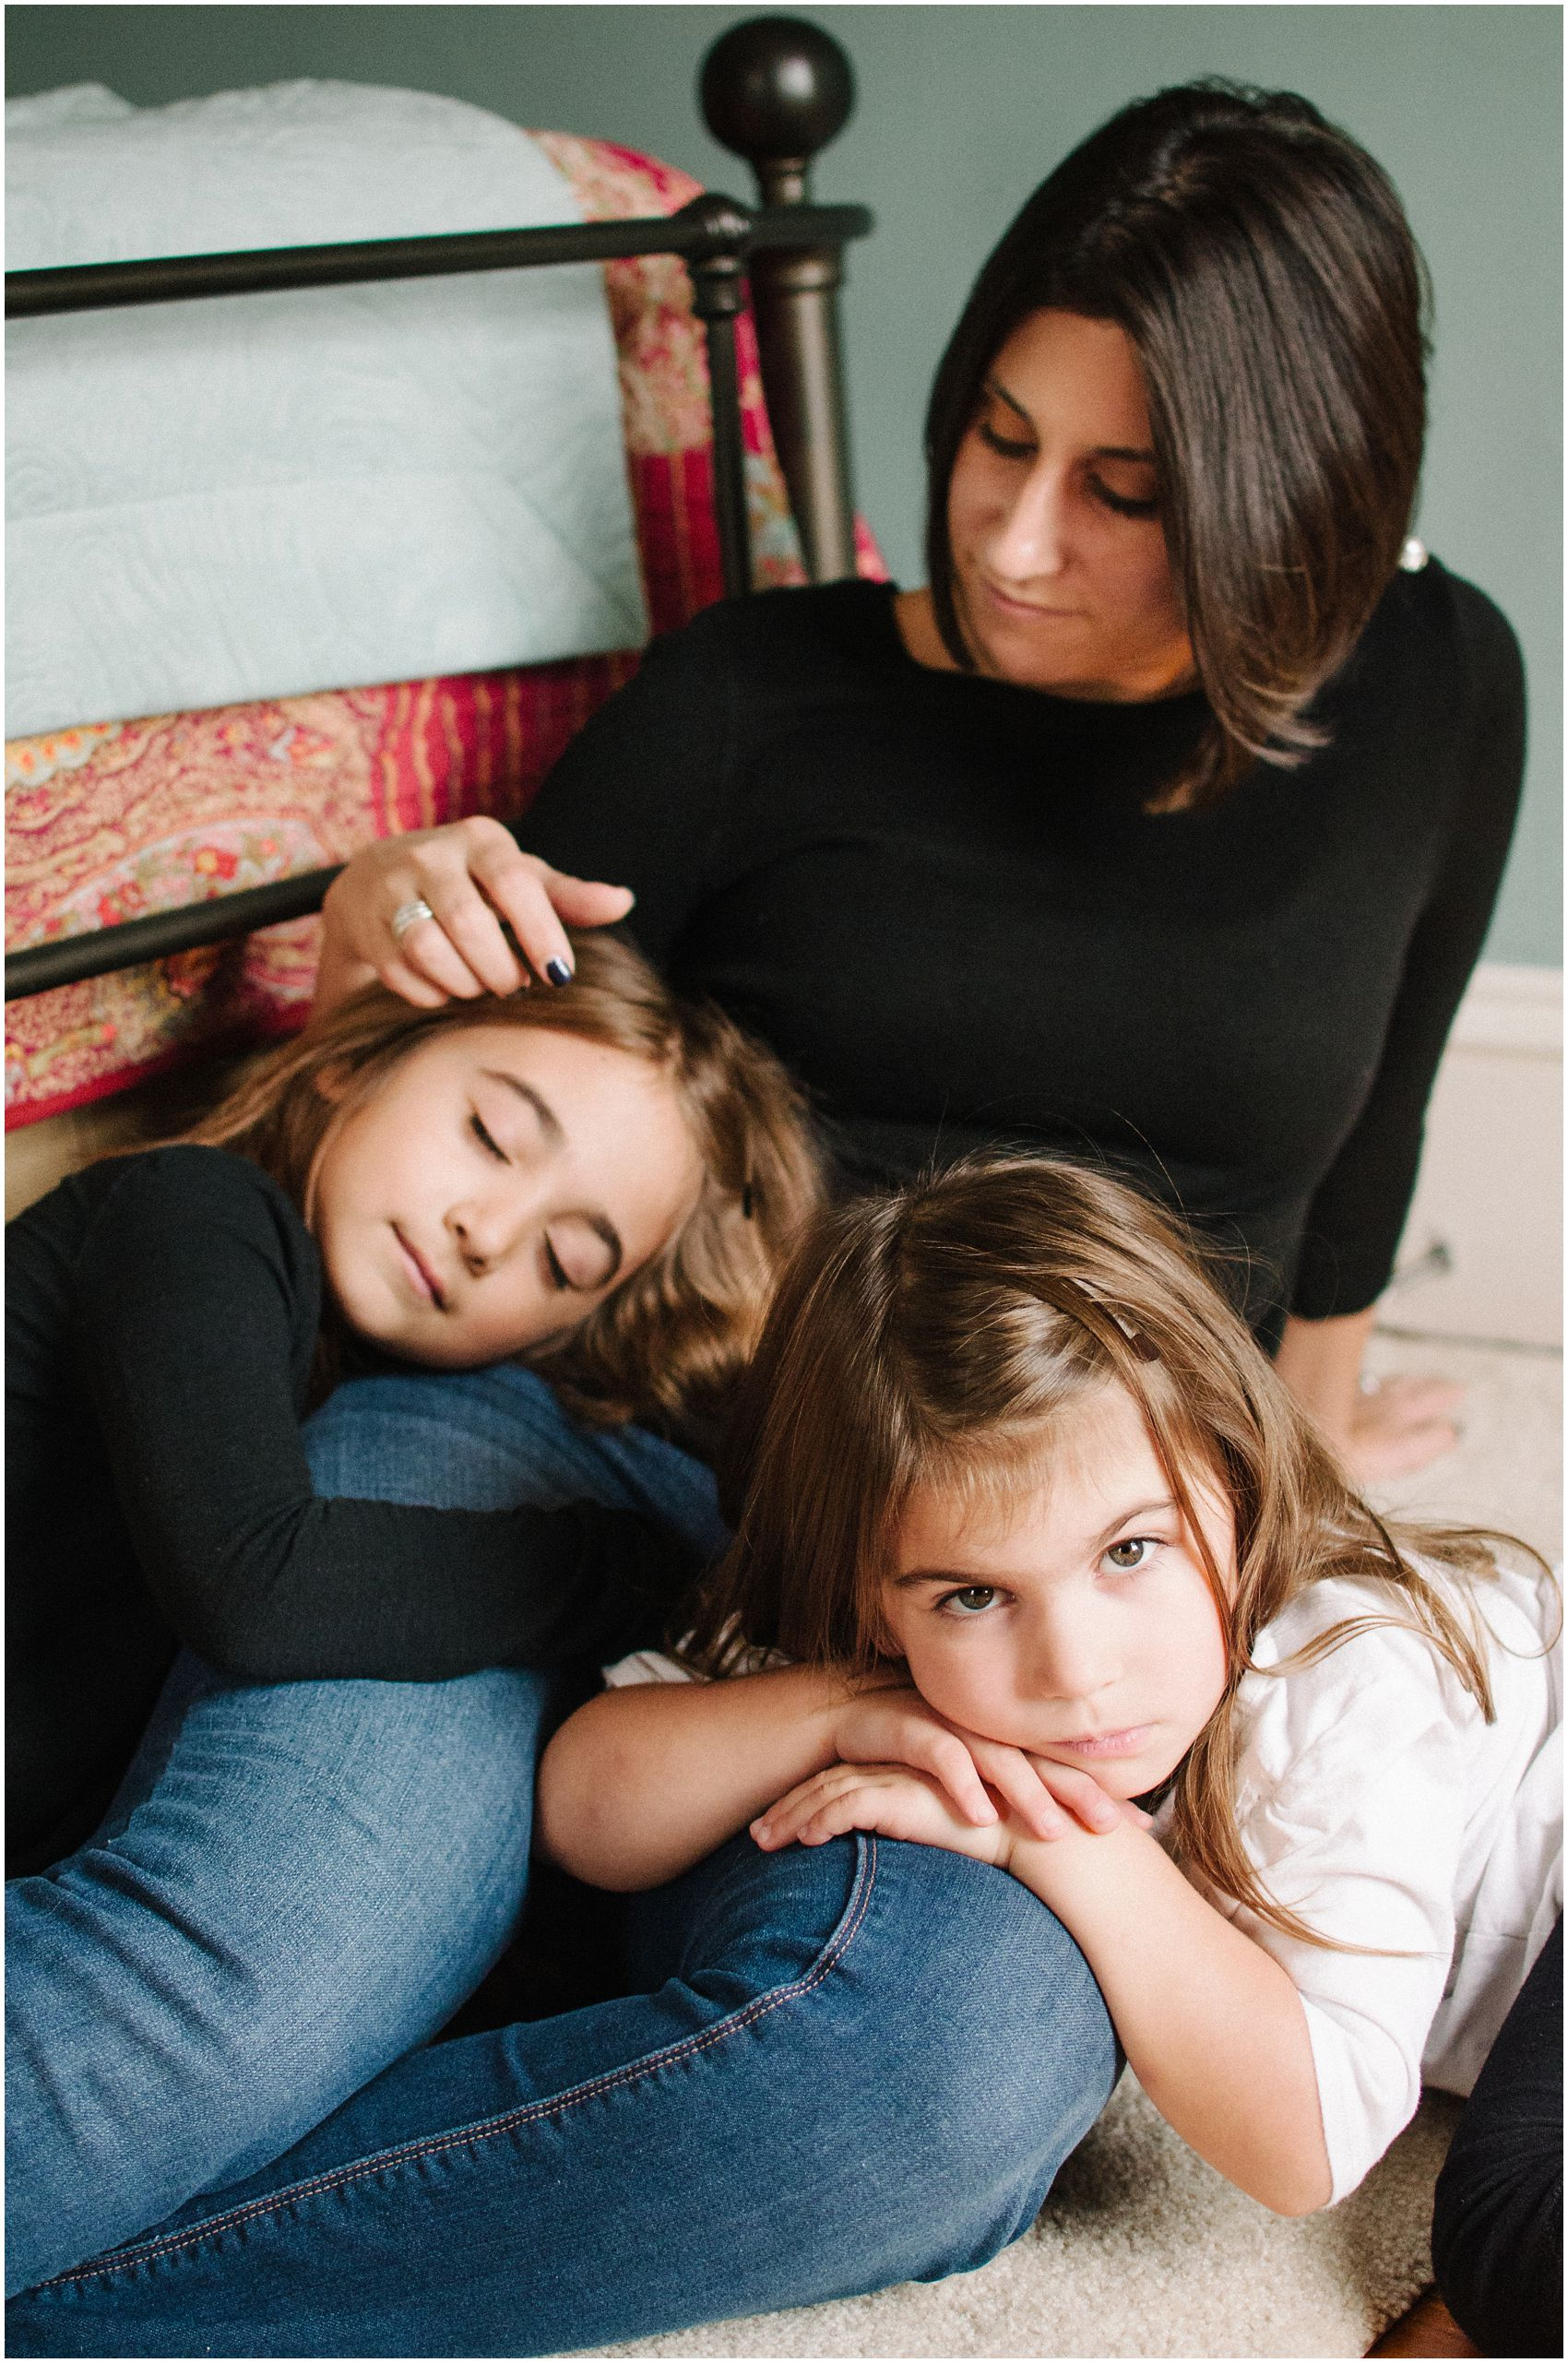 Family Photographer Miriam Dubinsky shares a motherhood portrait of a mom and two daughters snuggling together in their NJ bedroom